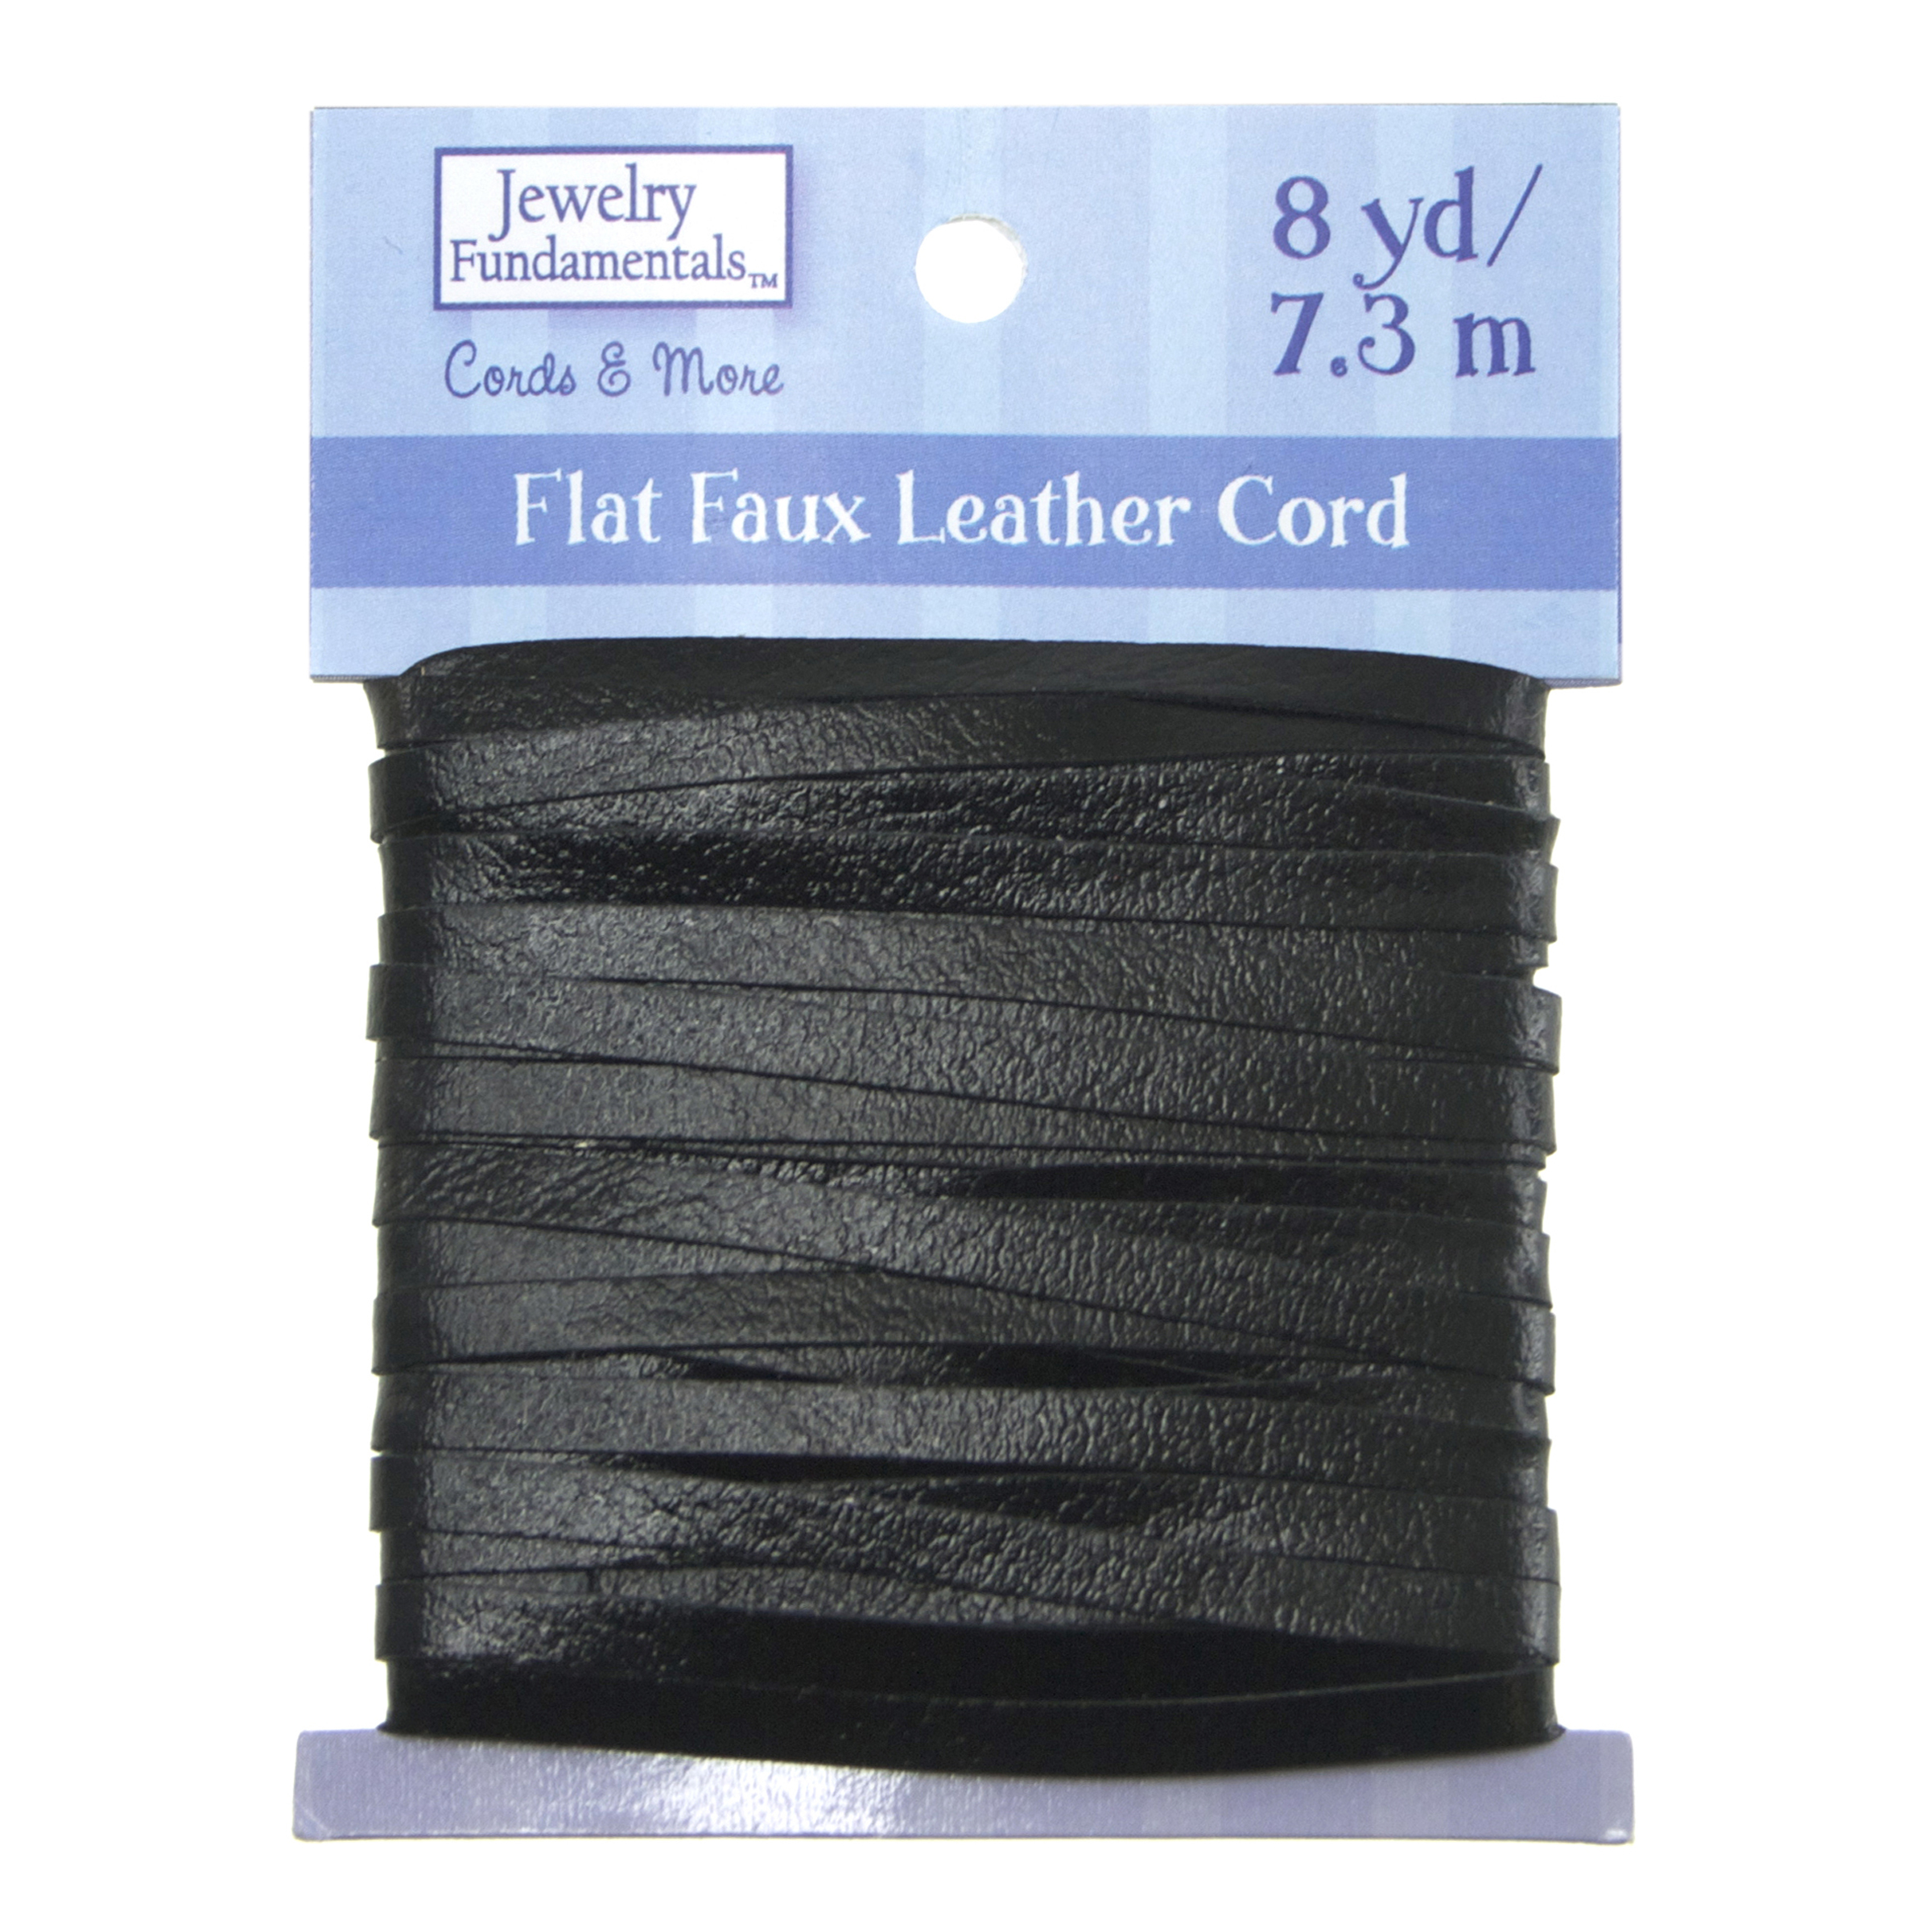 Jewelry Fundamentals Cords&More Flat Faux Leather Cord- Black Shiny